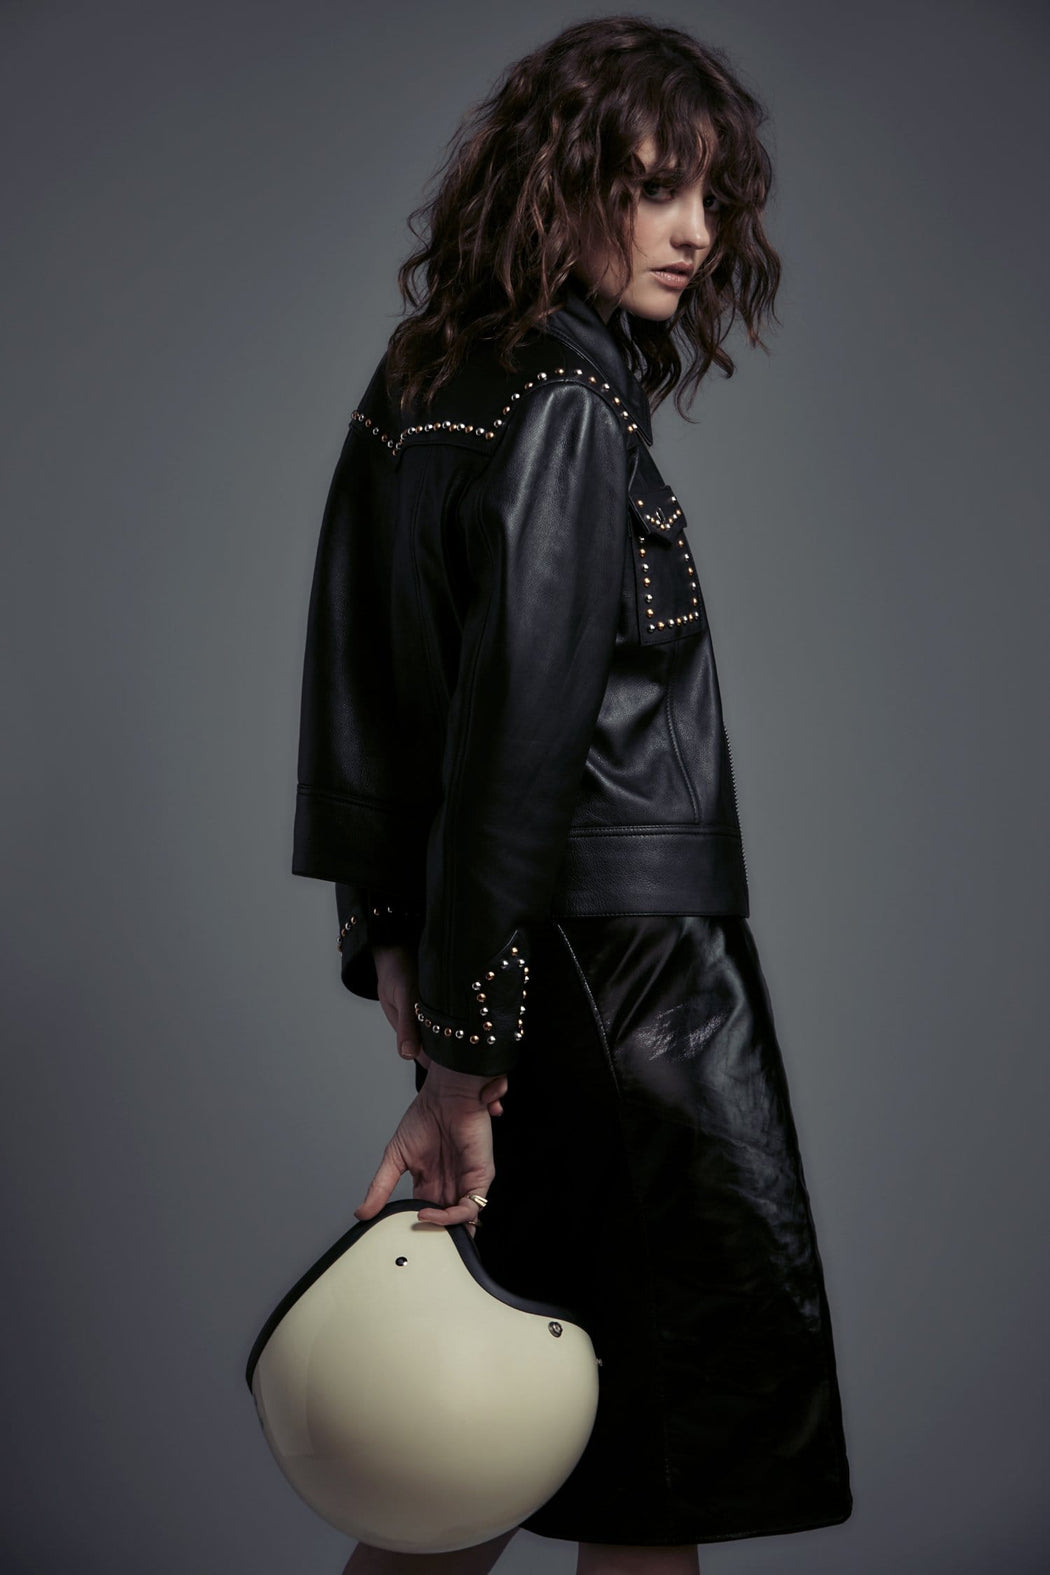 MIXED METAL STUDDED LEATHER JACKET